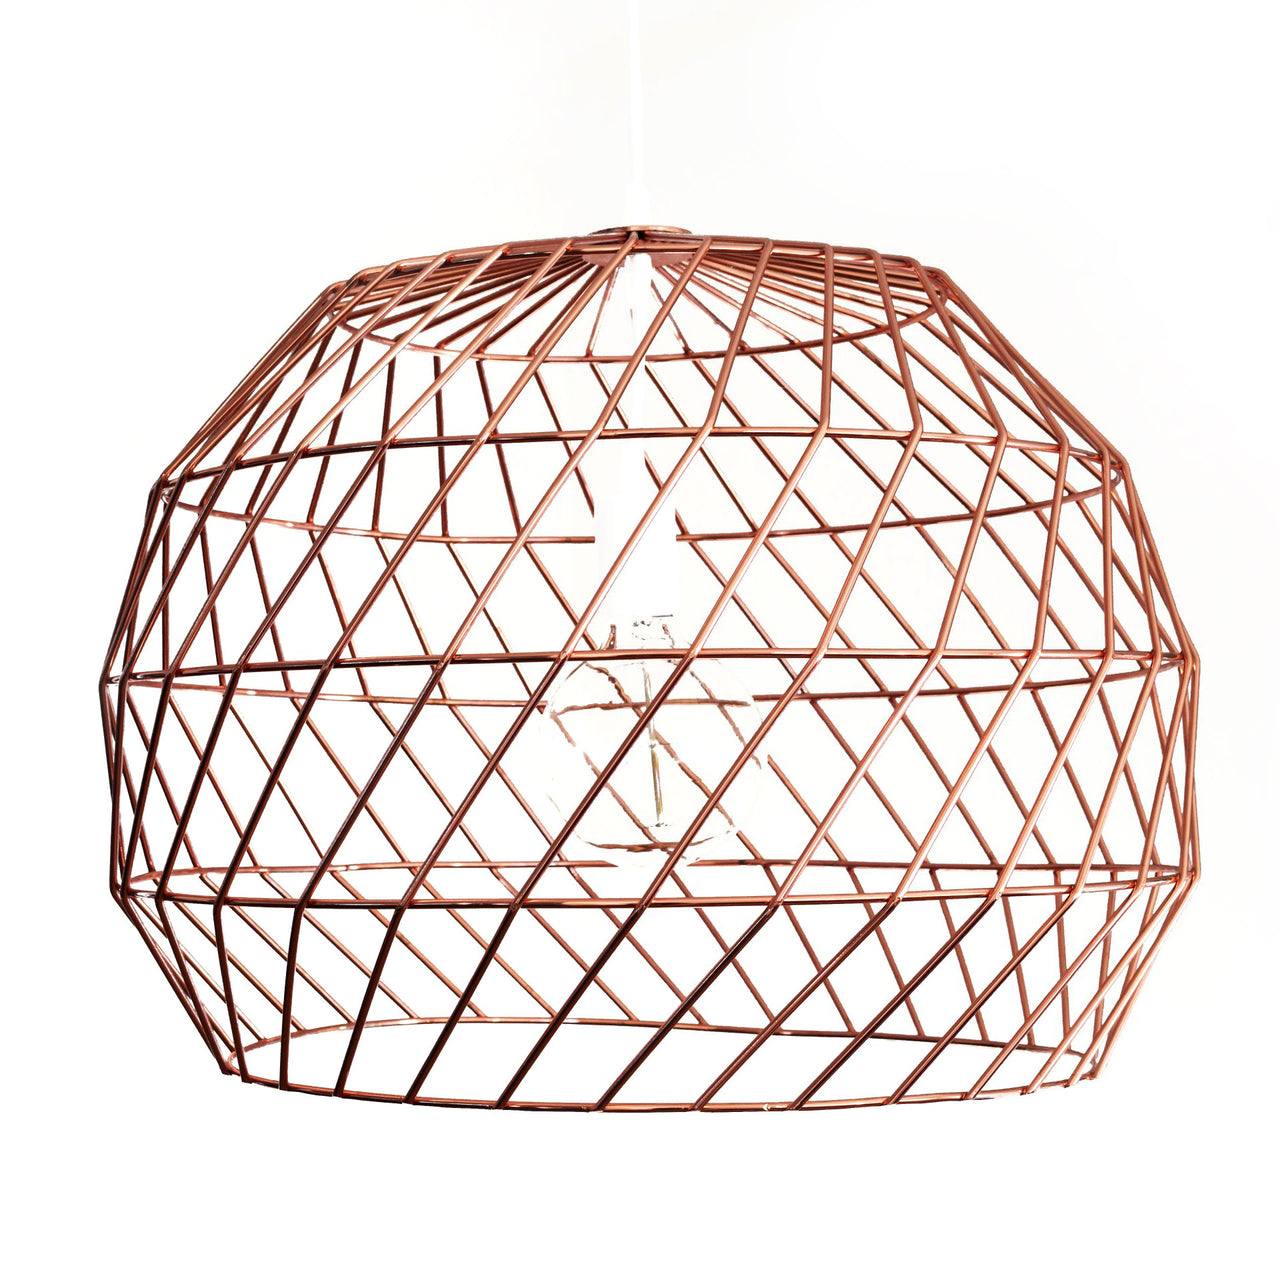 Array Pendant Chandelier - Woonwinkel - 1